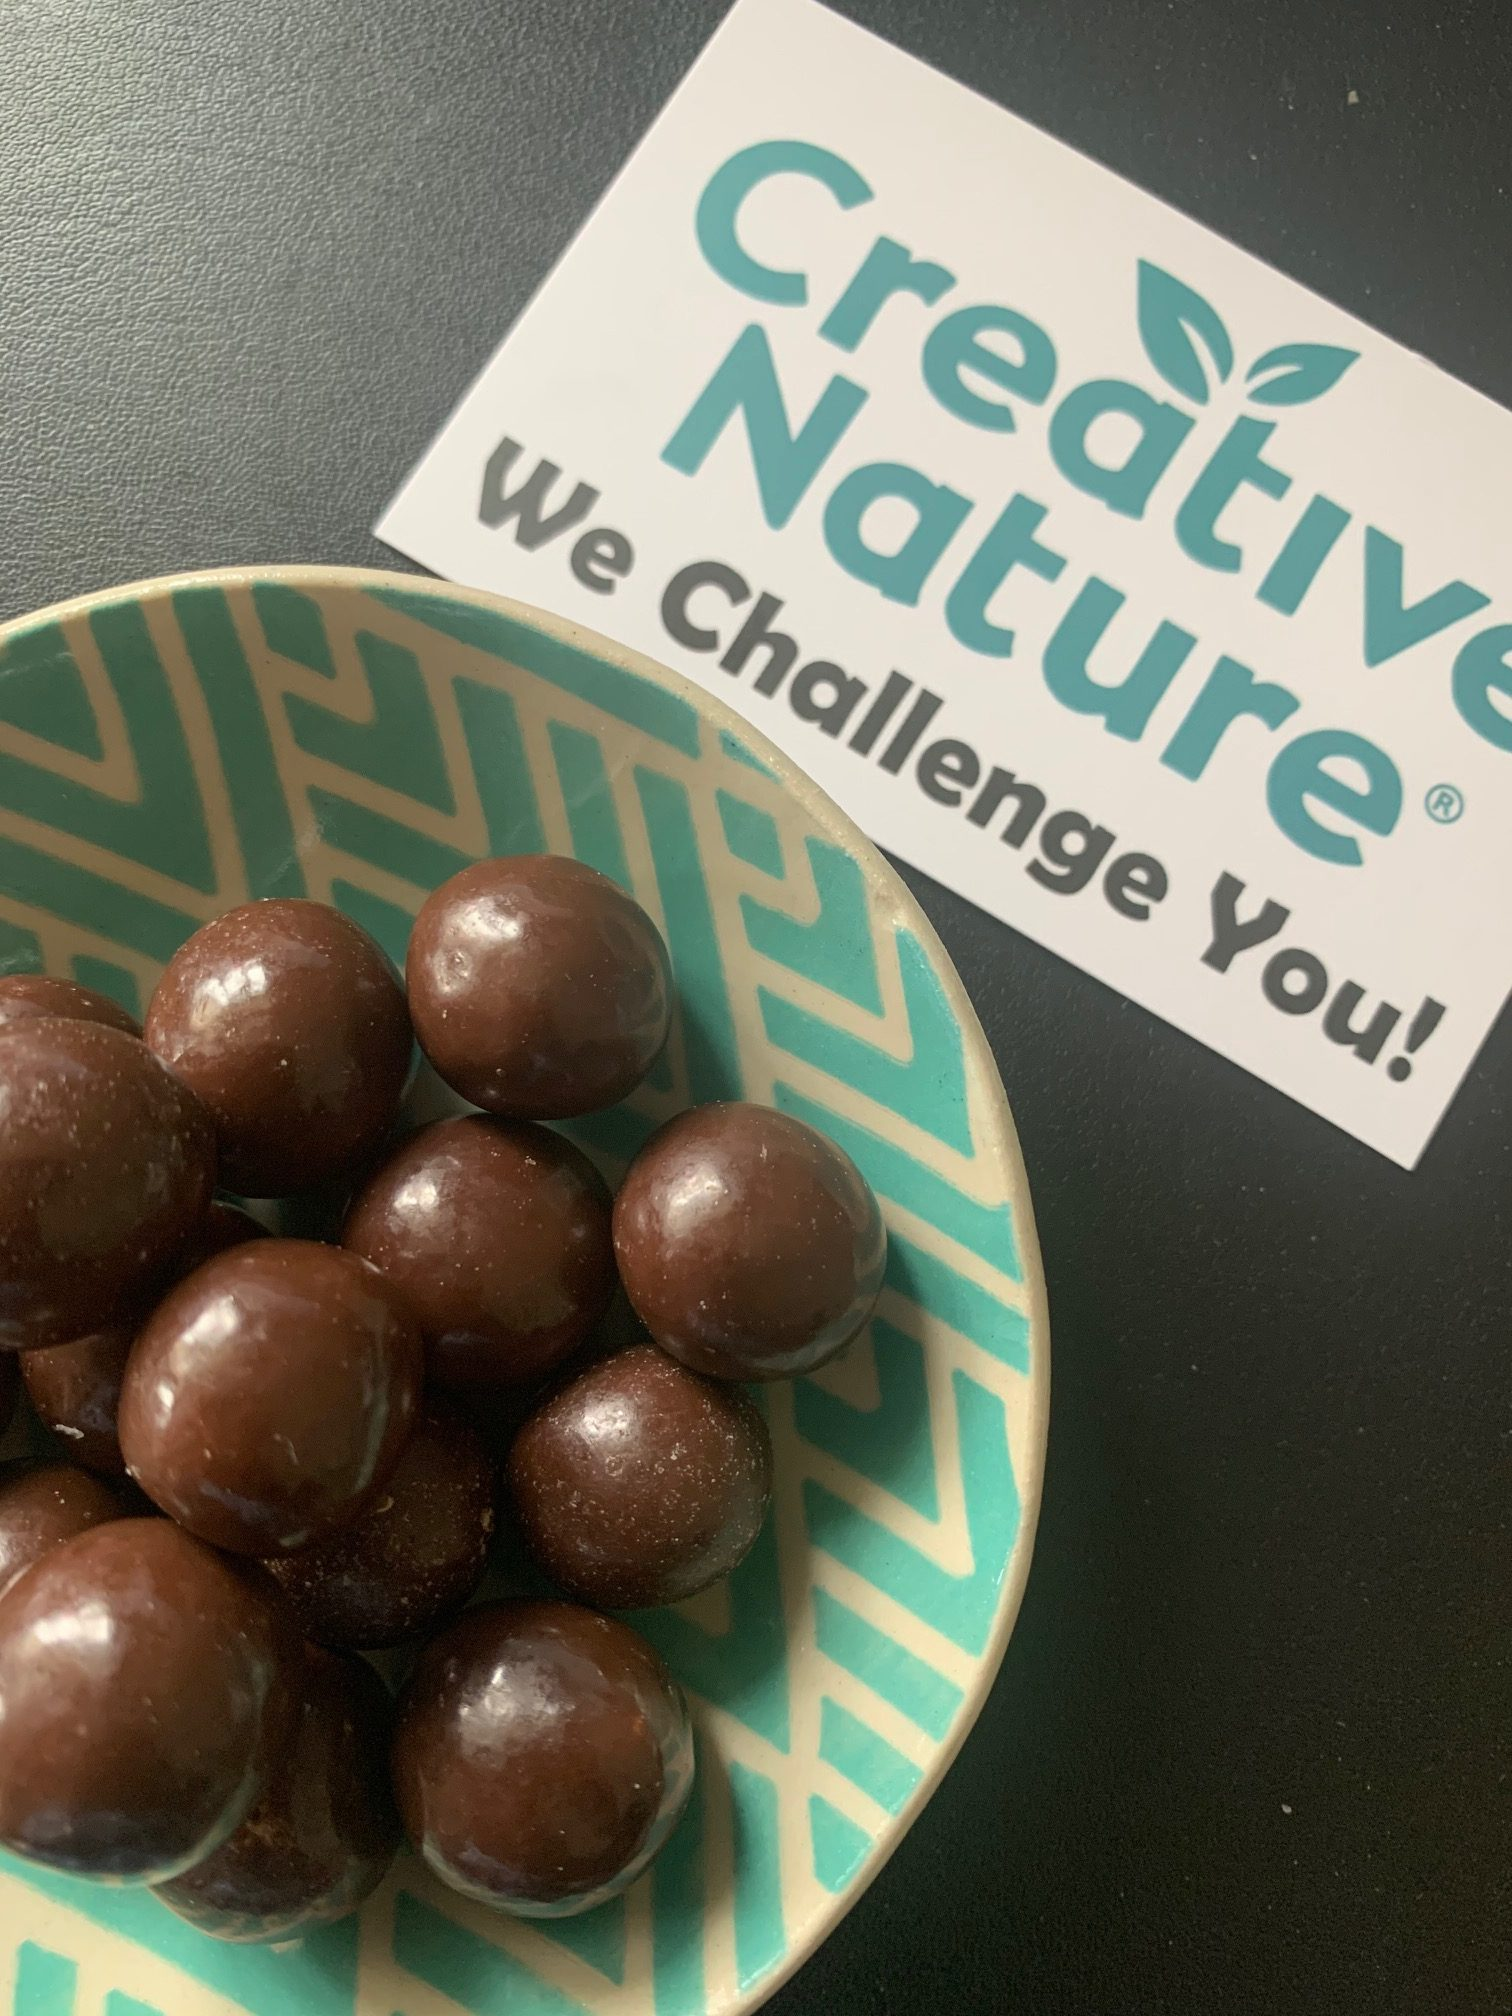 Creative Nature FreeFrom Top14 chocolate and cake mixes